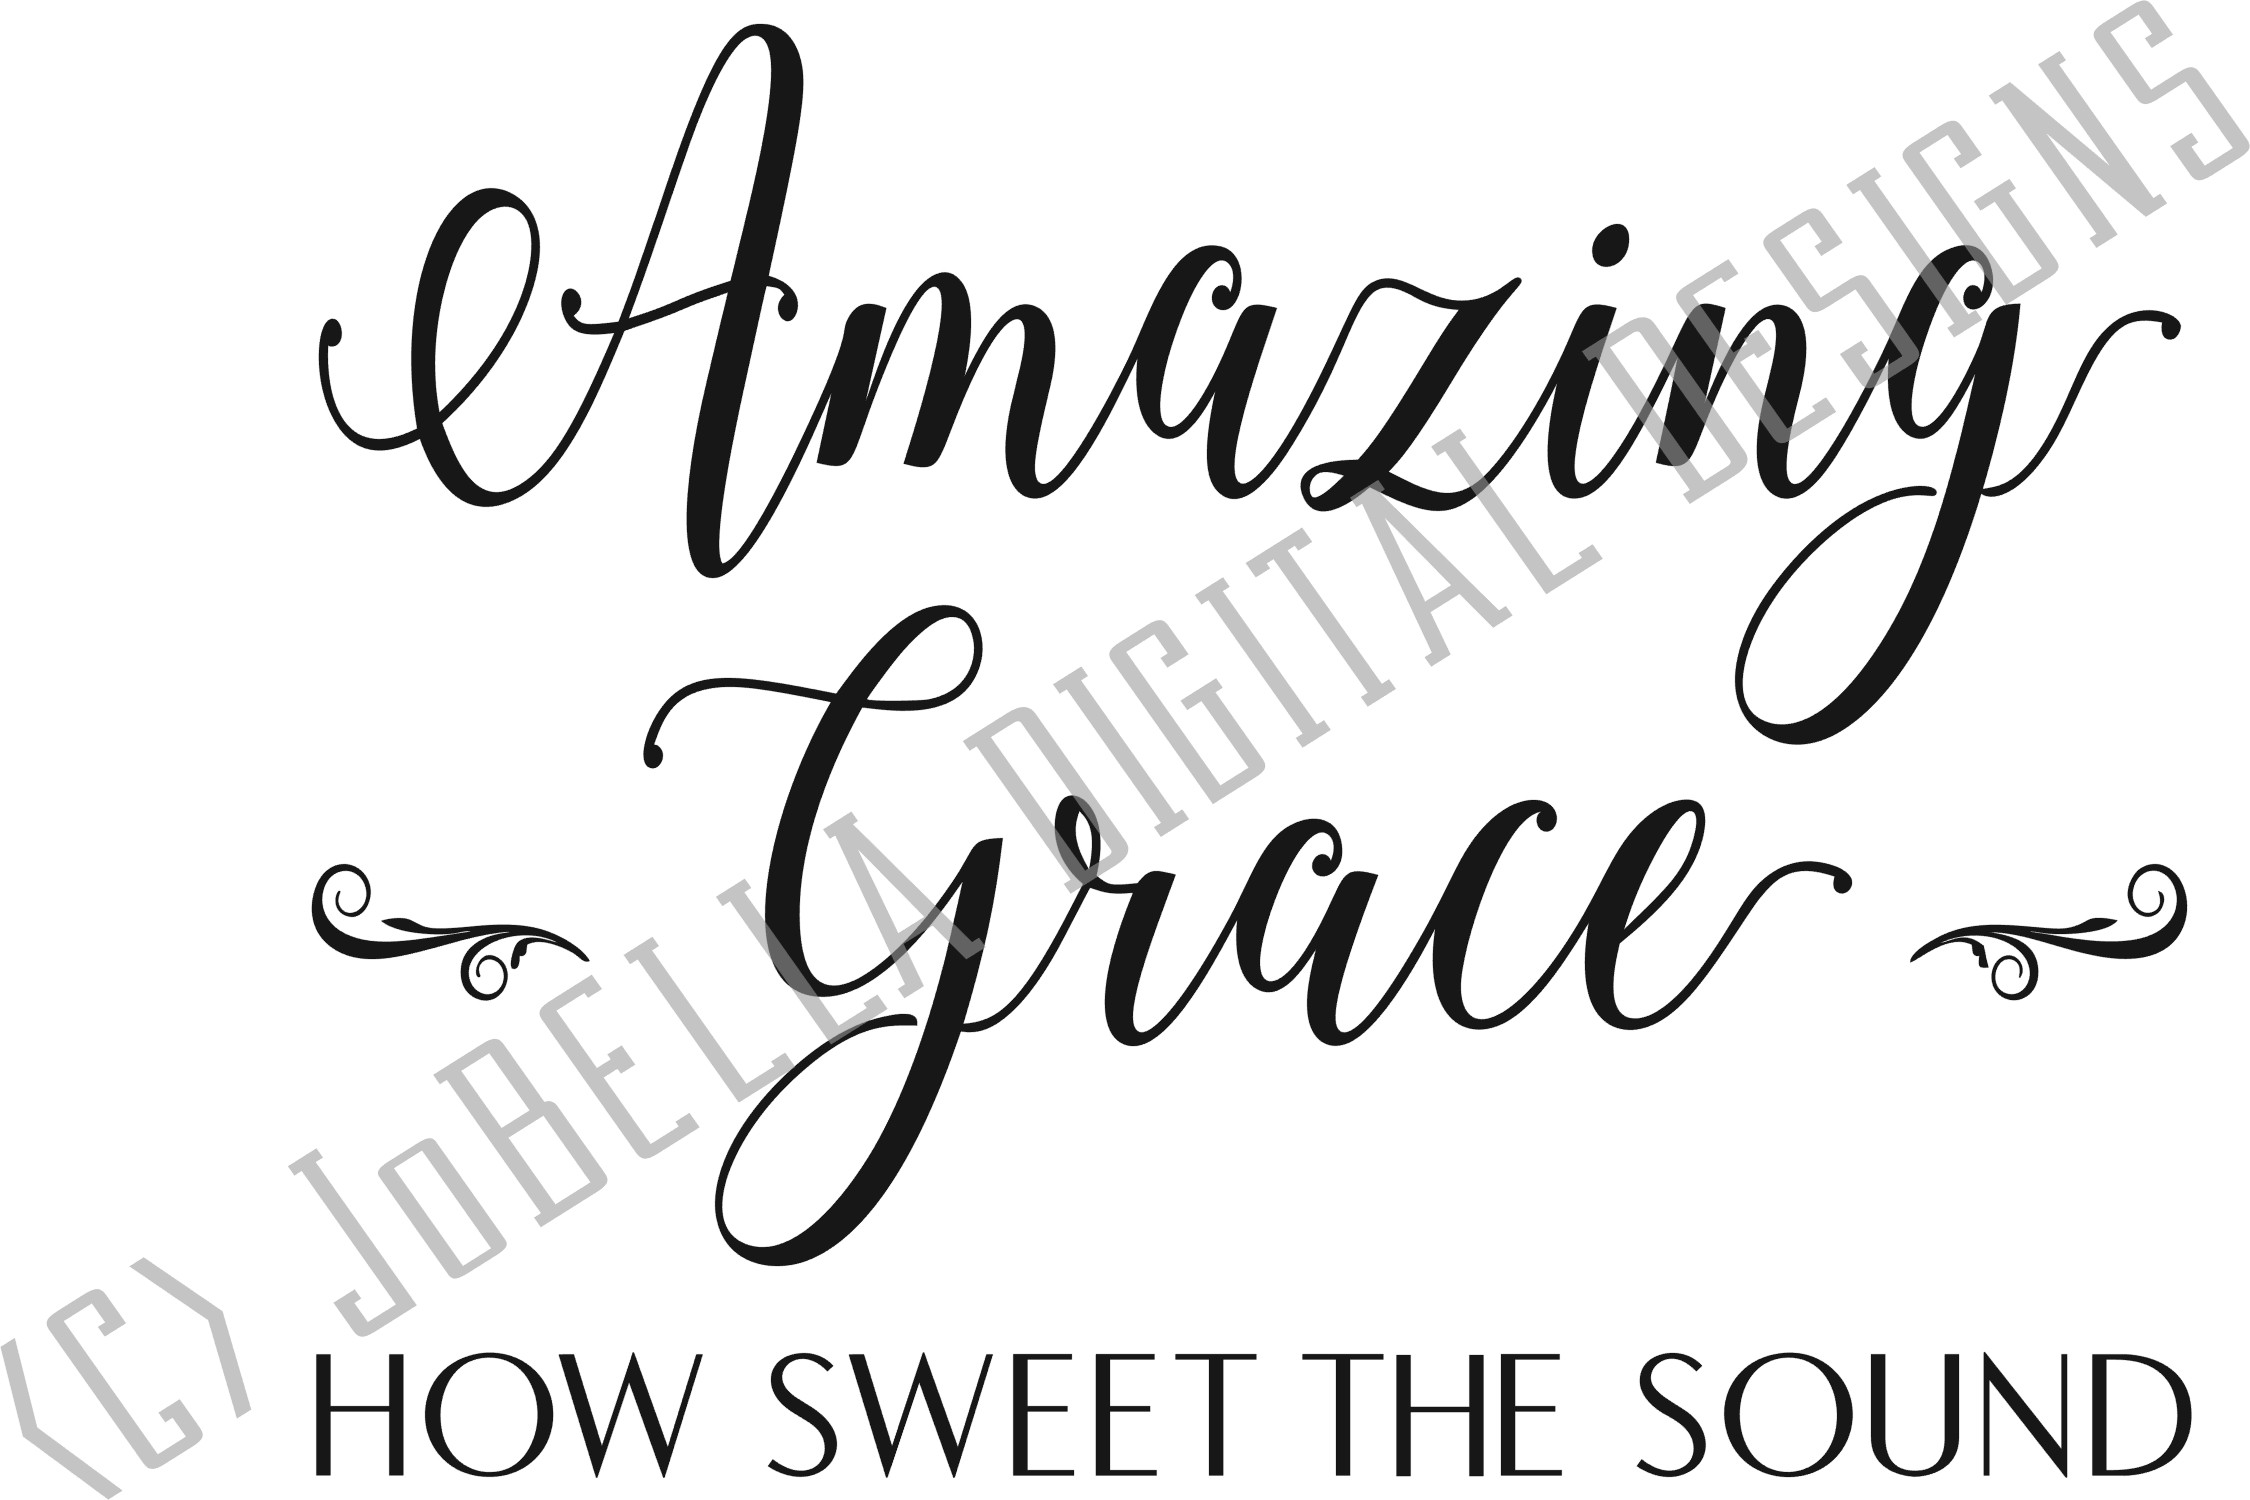 Amazing Grace SVG, Sublimation & Printable Christian Design